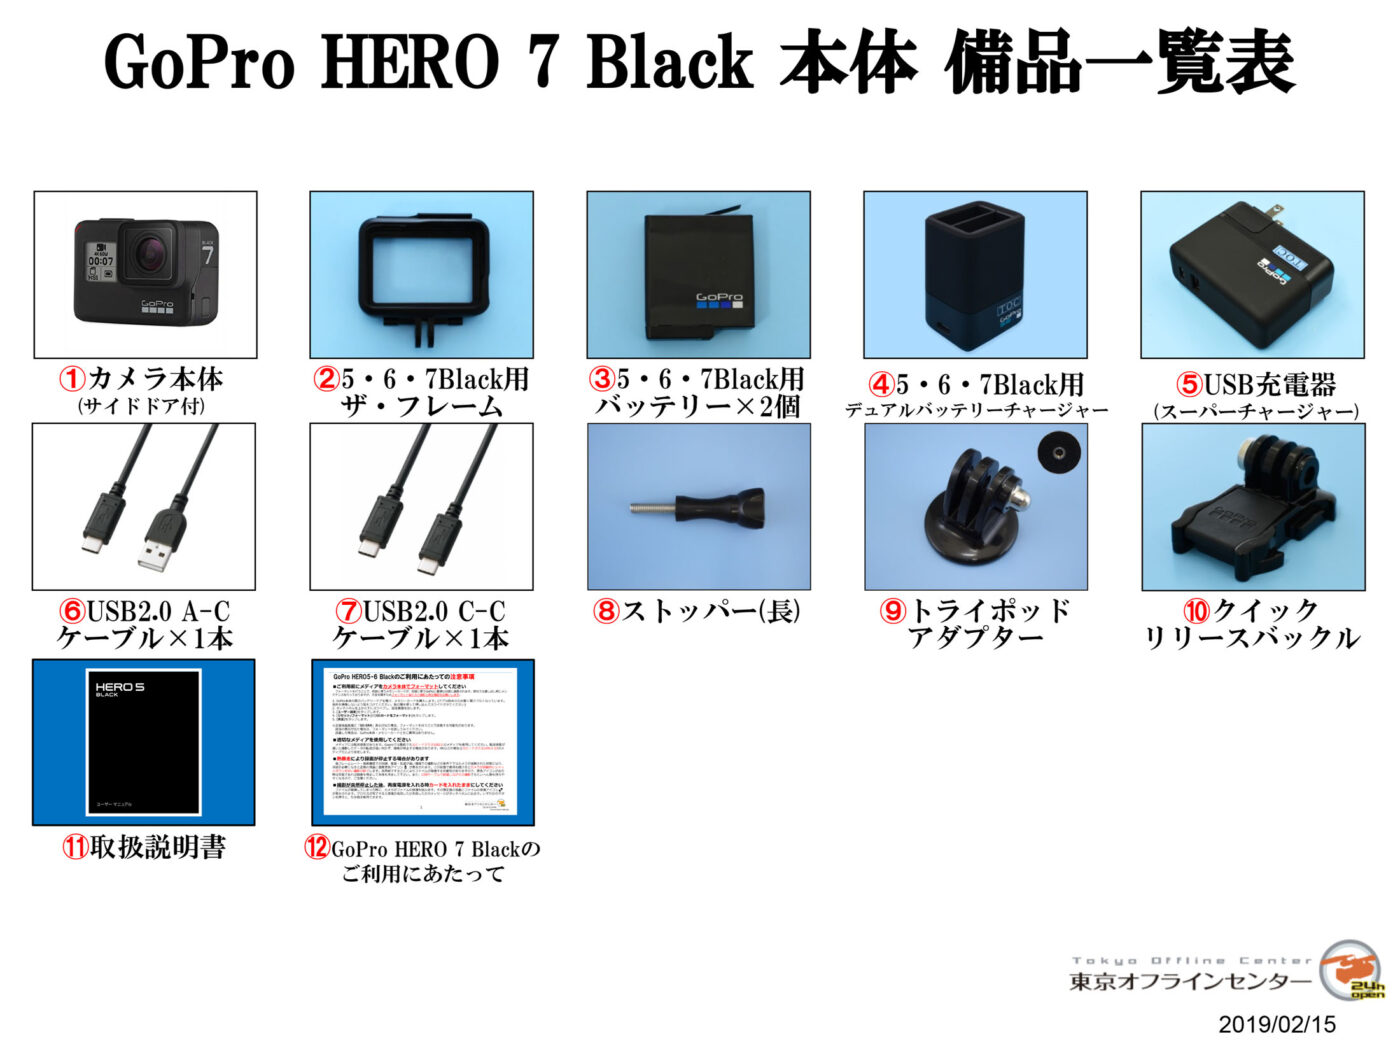 GoPro HERO7 Black 備品一覧